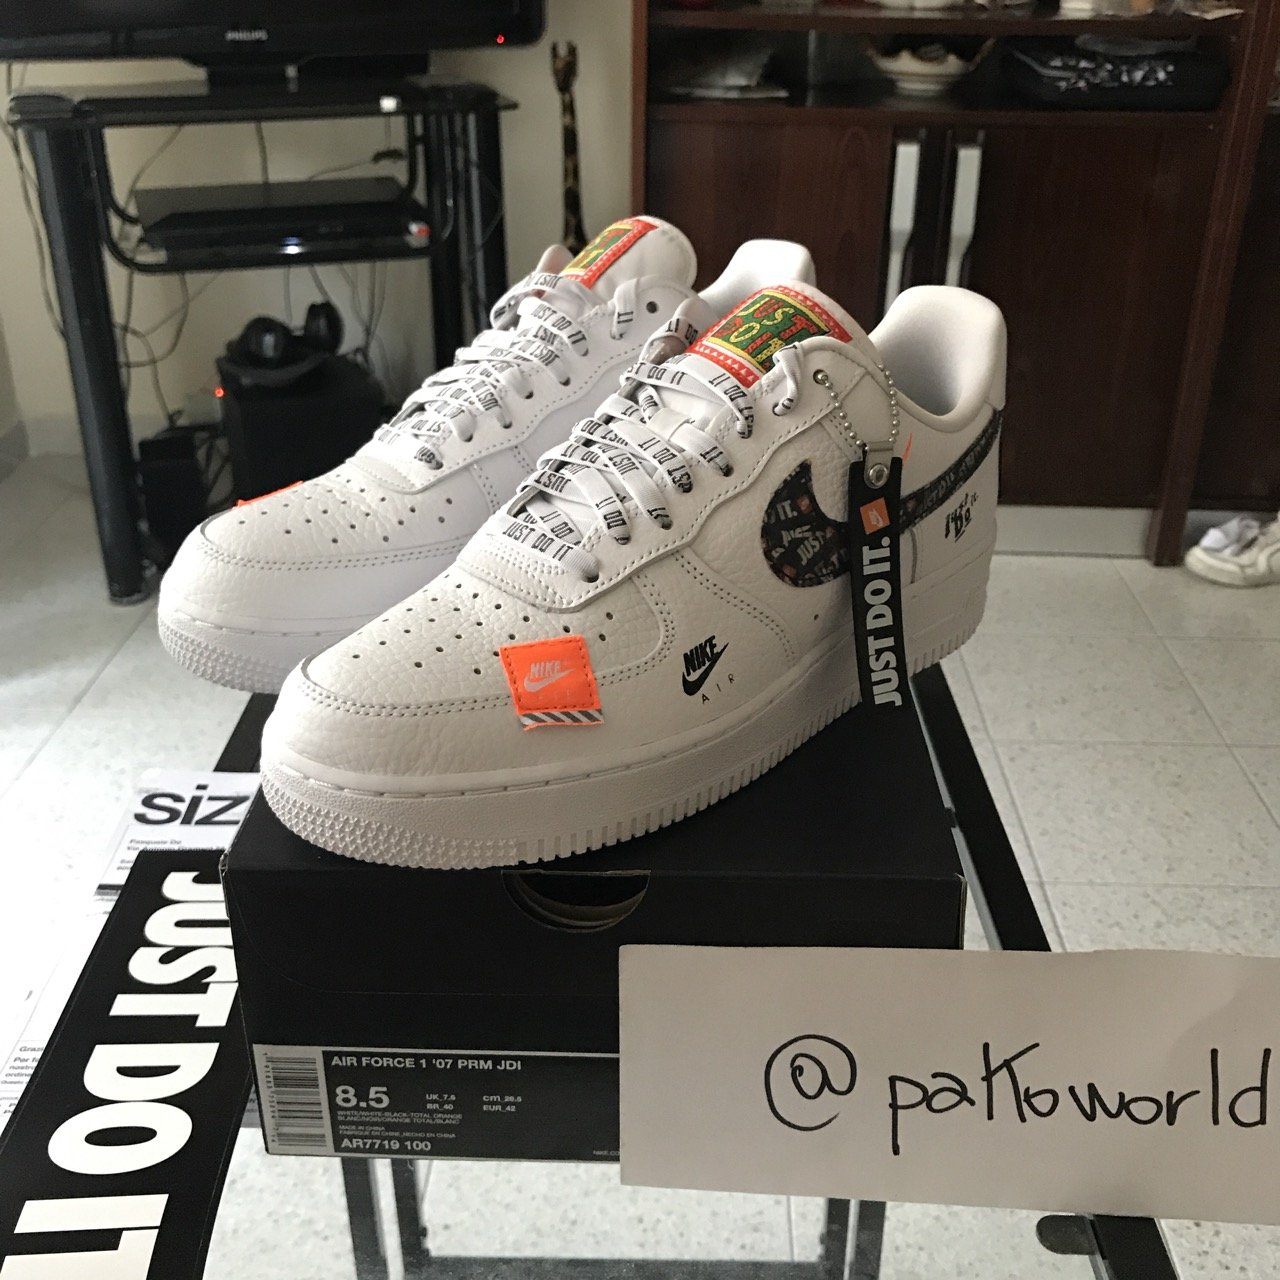 nike just do it air force 1 bianche